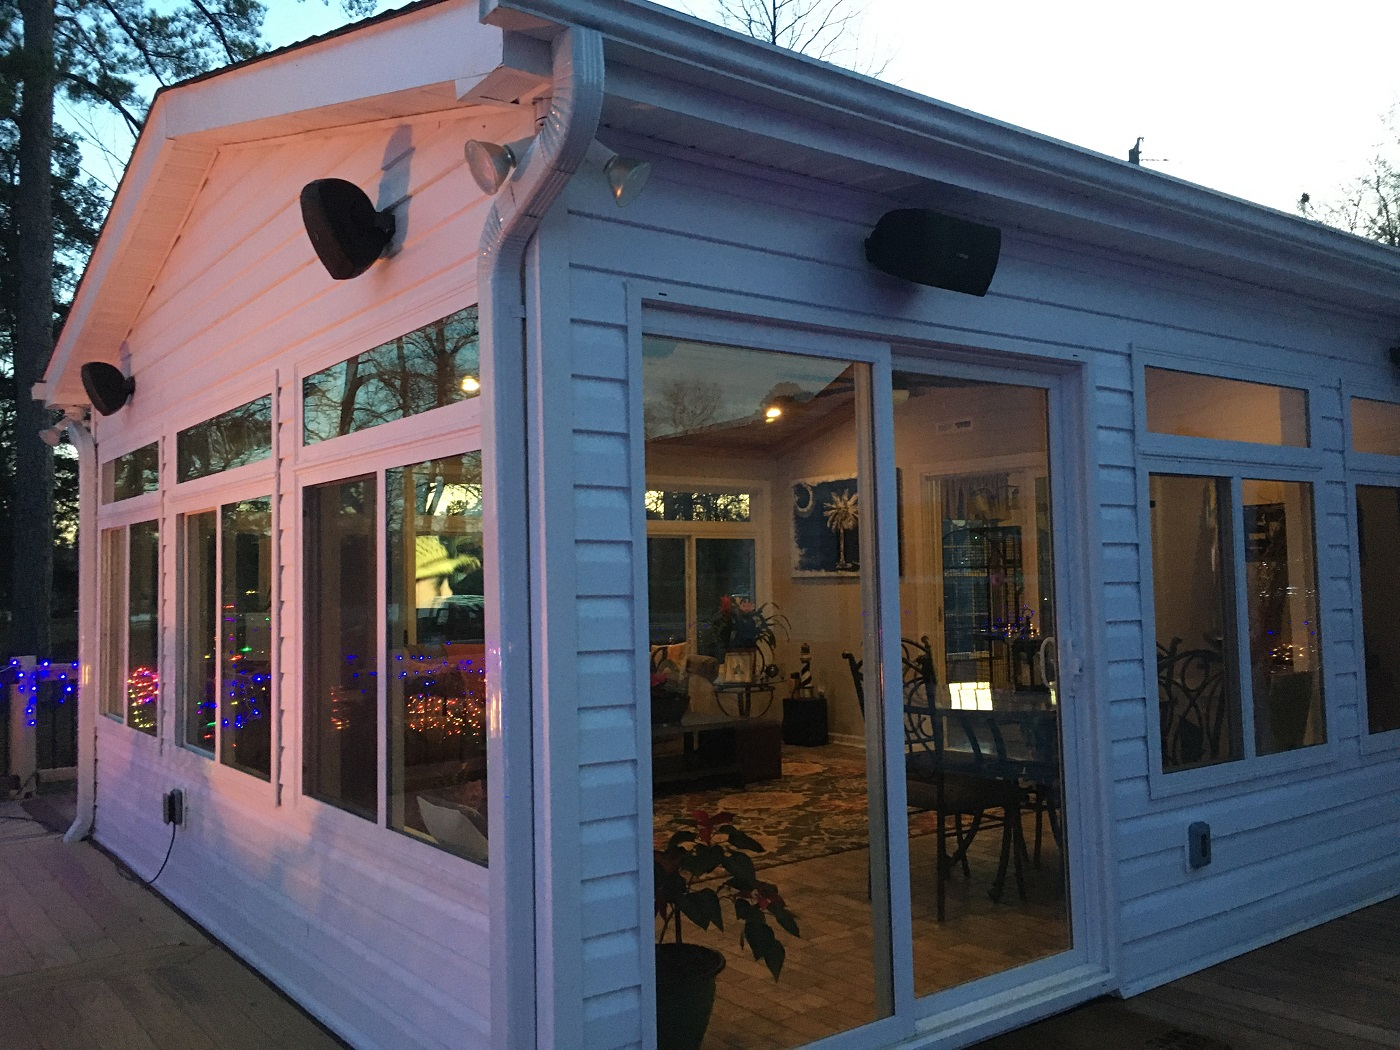 The-new-sunroom-addition-was-built-with-finish-details-that-give-it-an-always-been-there-appeal